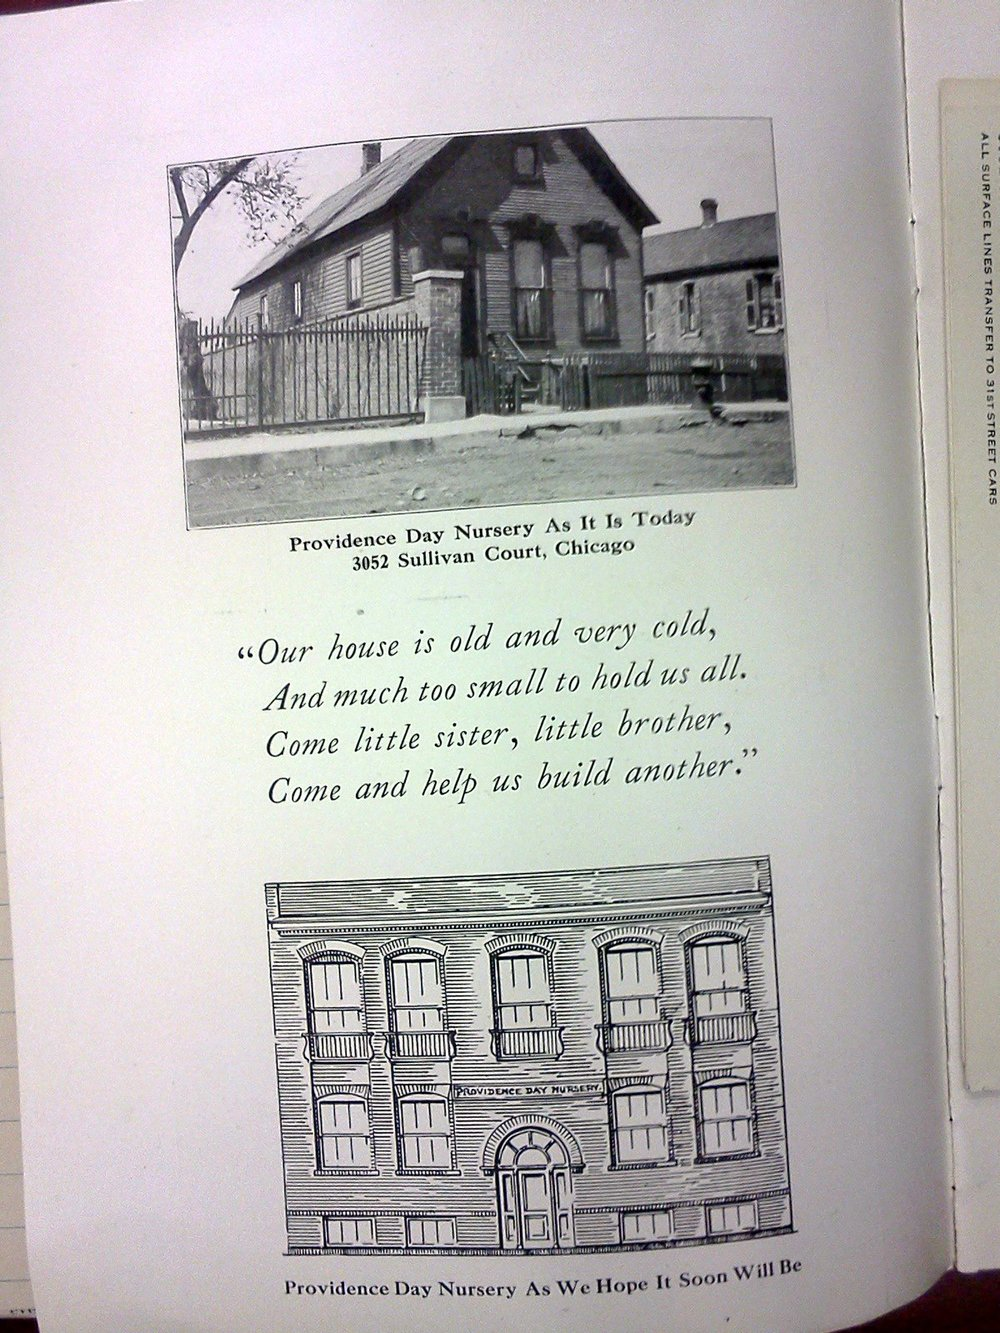 A Photograph of the Old Providence Day Nursery followed by a drawing of what became the Benton House